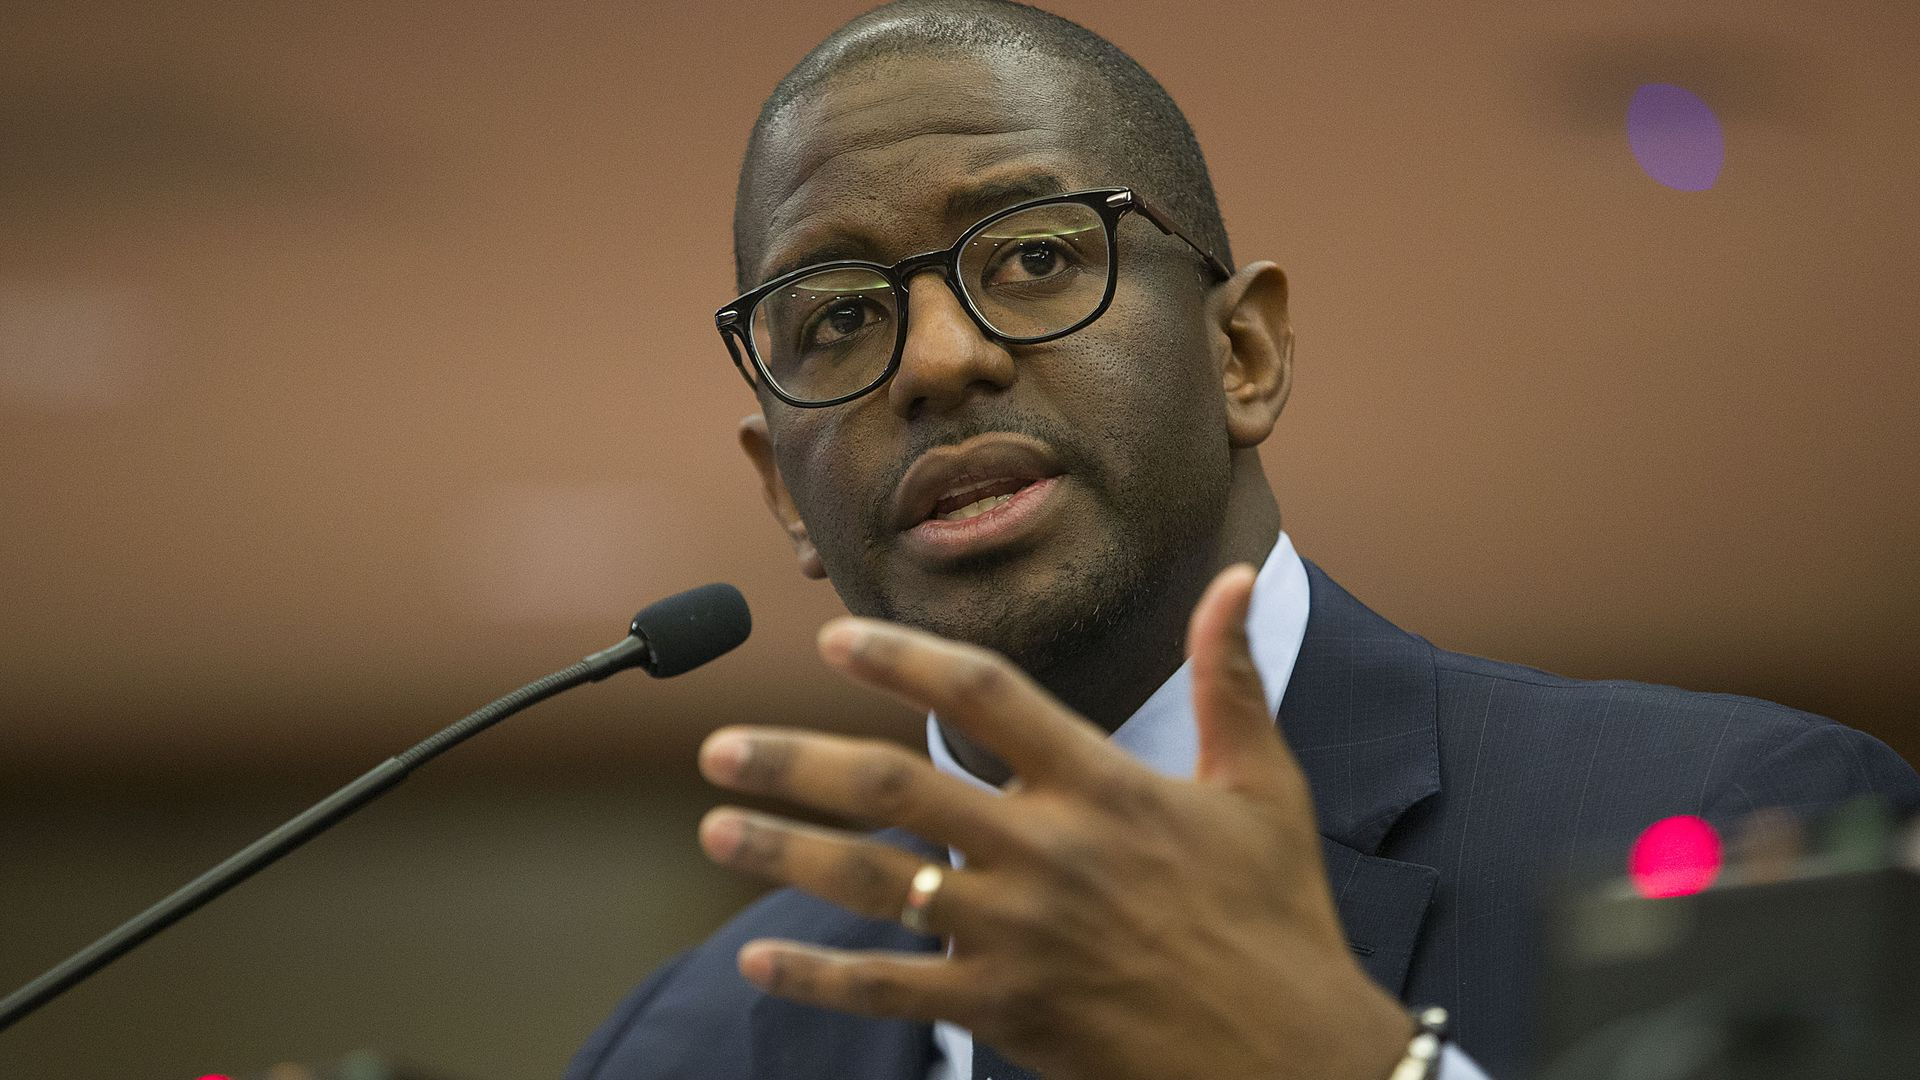 Gillum speaking into a microphone